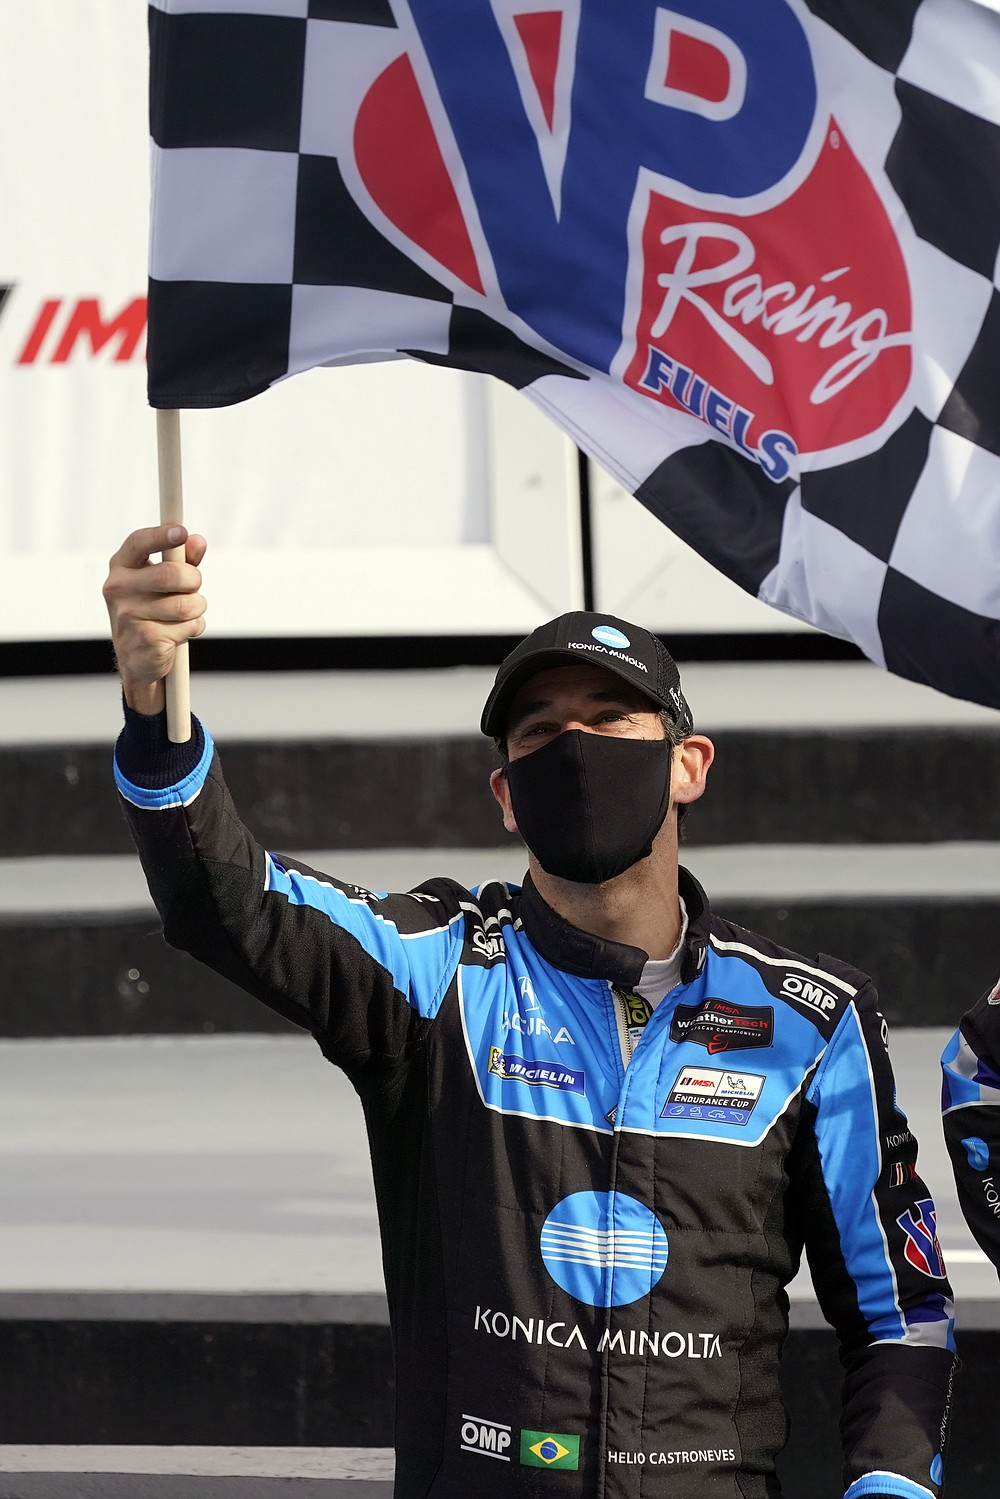 Helio Castroneves waves the checkered flag after he and driving teammates Ricky Taylor, Filipe Albuquerque and Alexander Rossi won the Rolex 24 hour auto race at Daytona International Speedway, Sunday, Jan. 31, 2021, in Daytona Beach, Fla. (AP Photo/John Raoux)